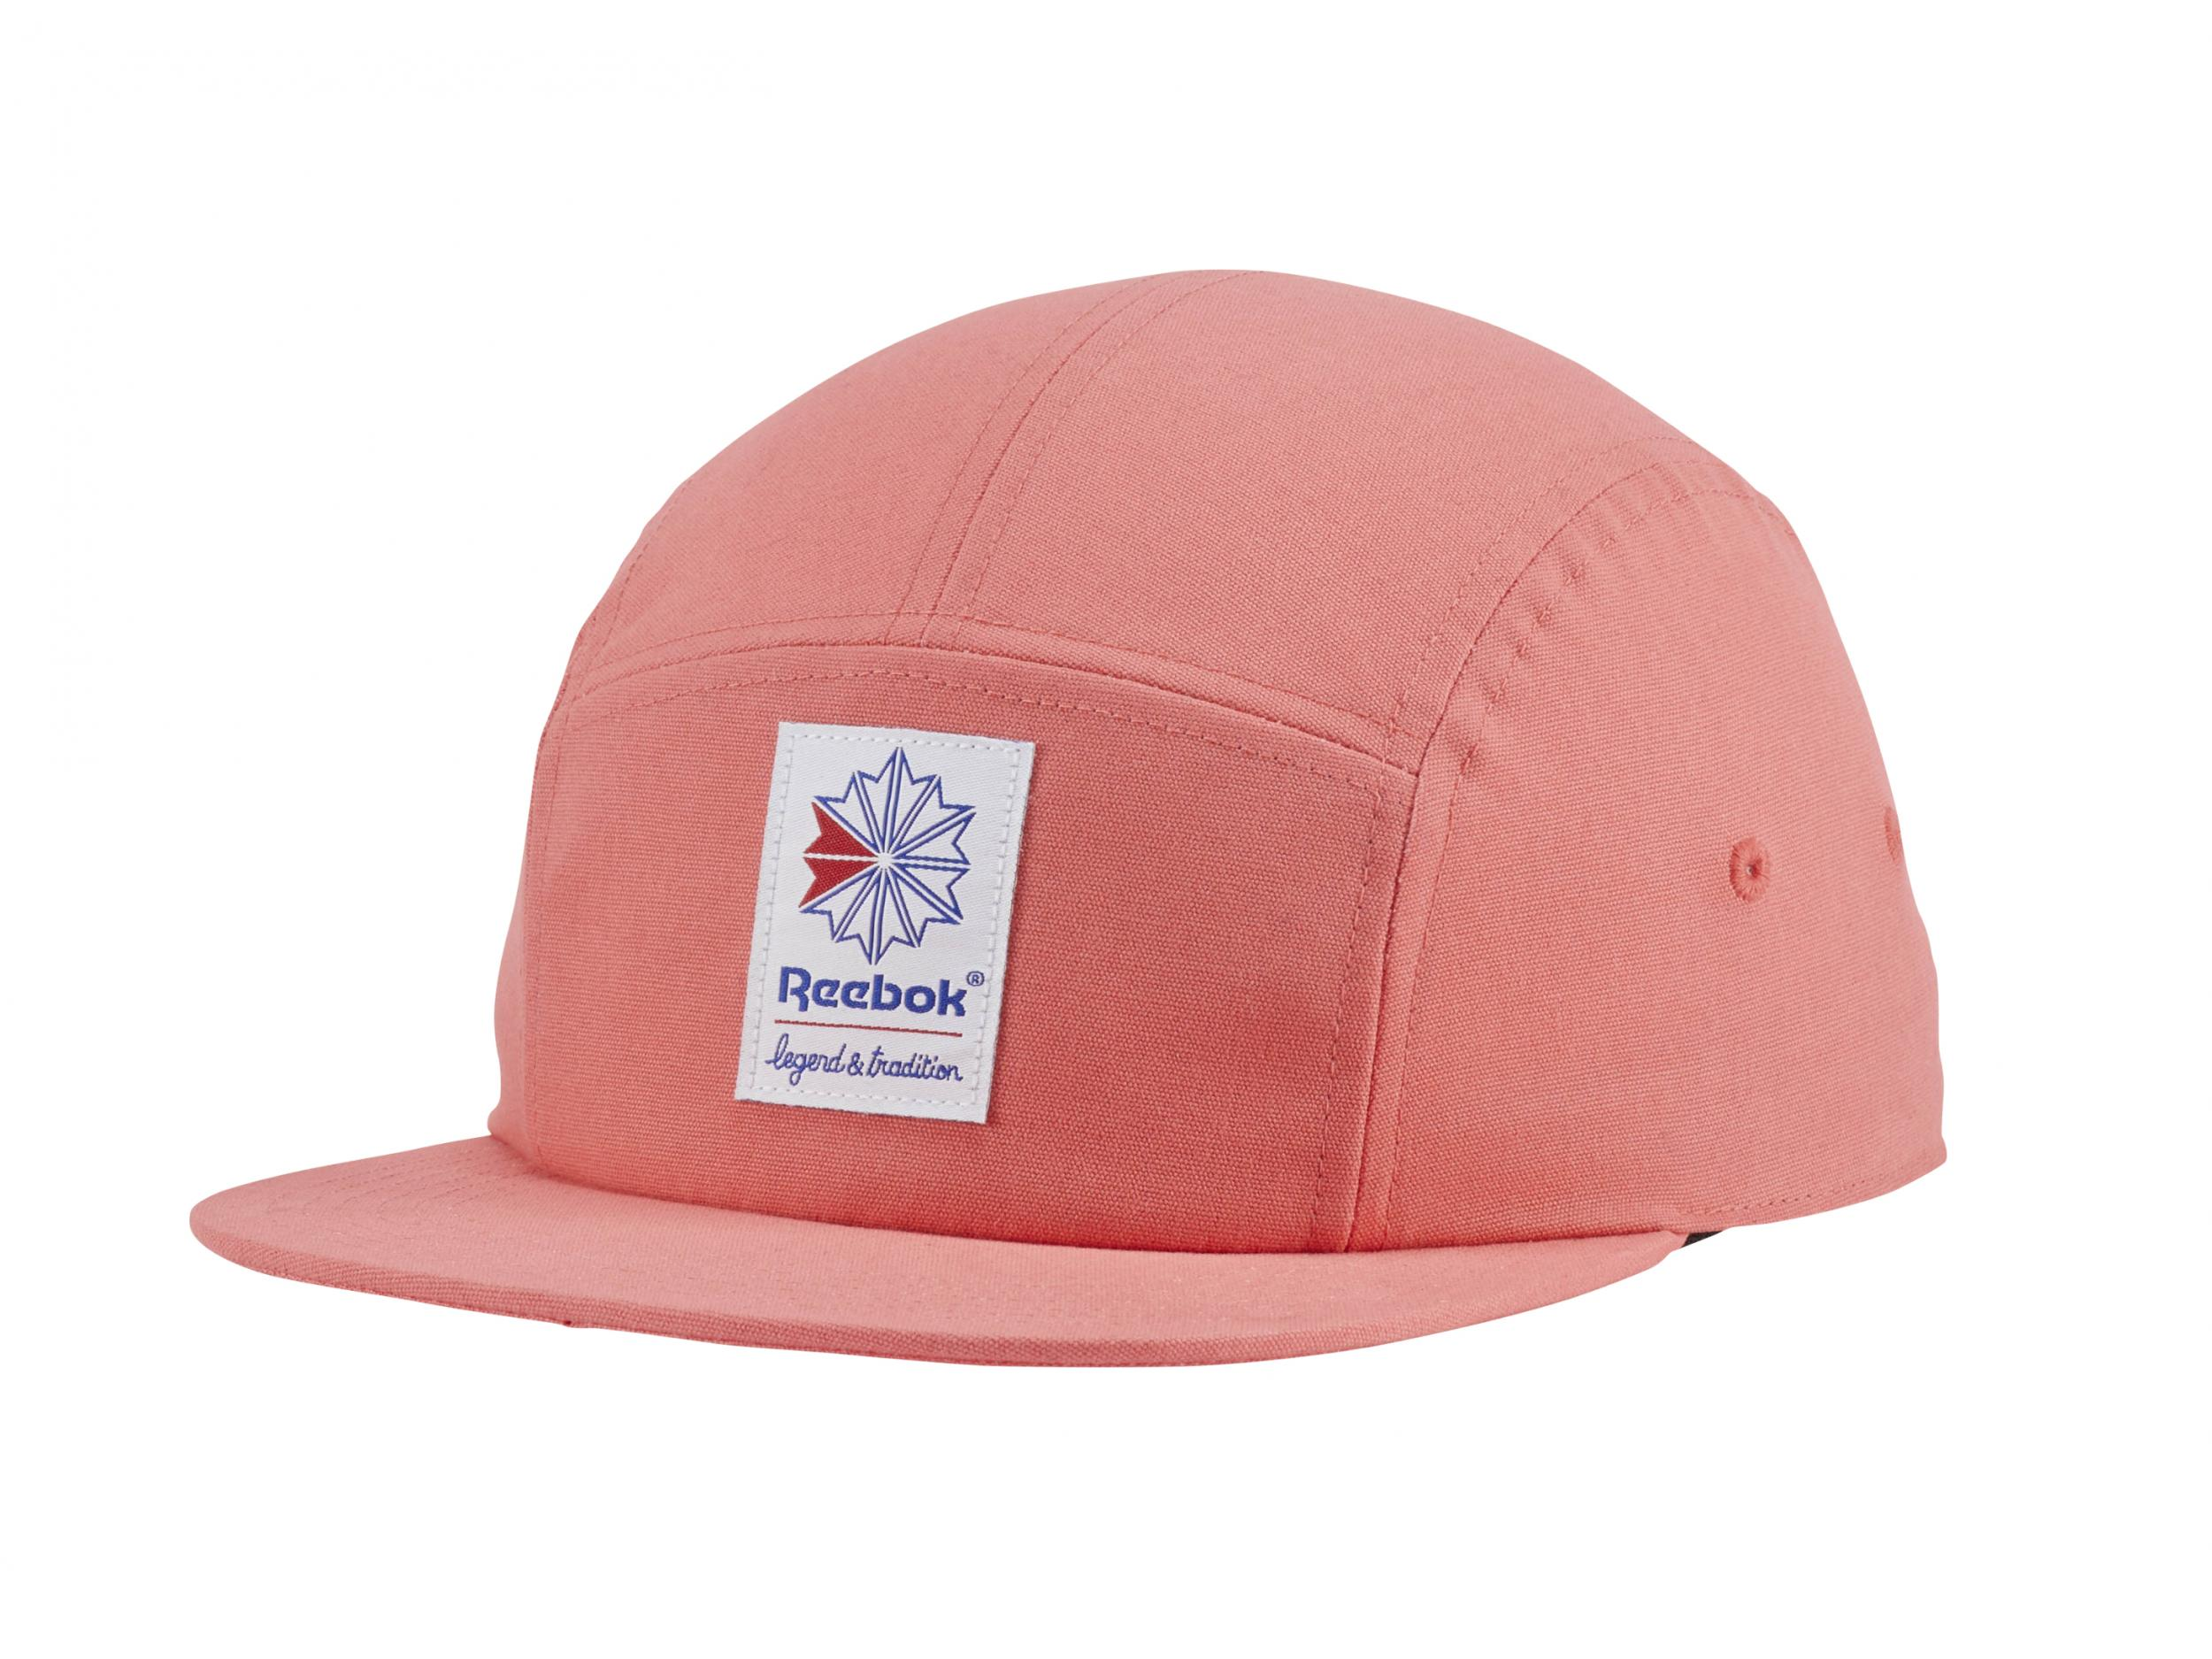 877e32bba0bcb Best men's summer hats: Caps, bucket hats and fedoras that are ...